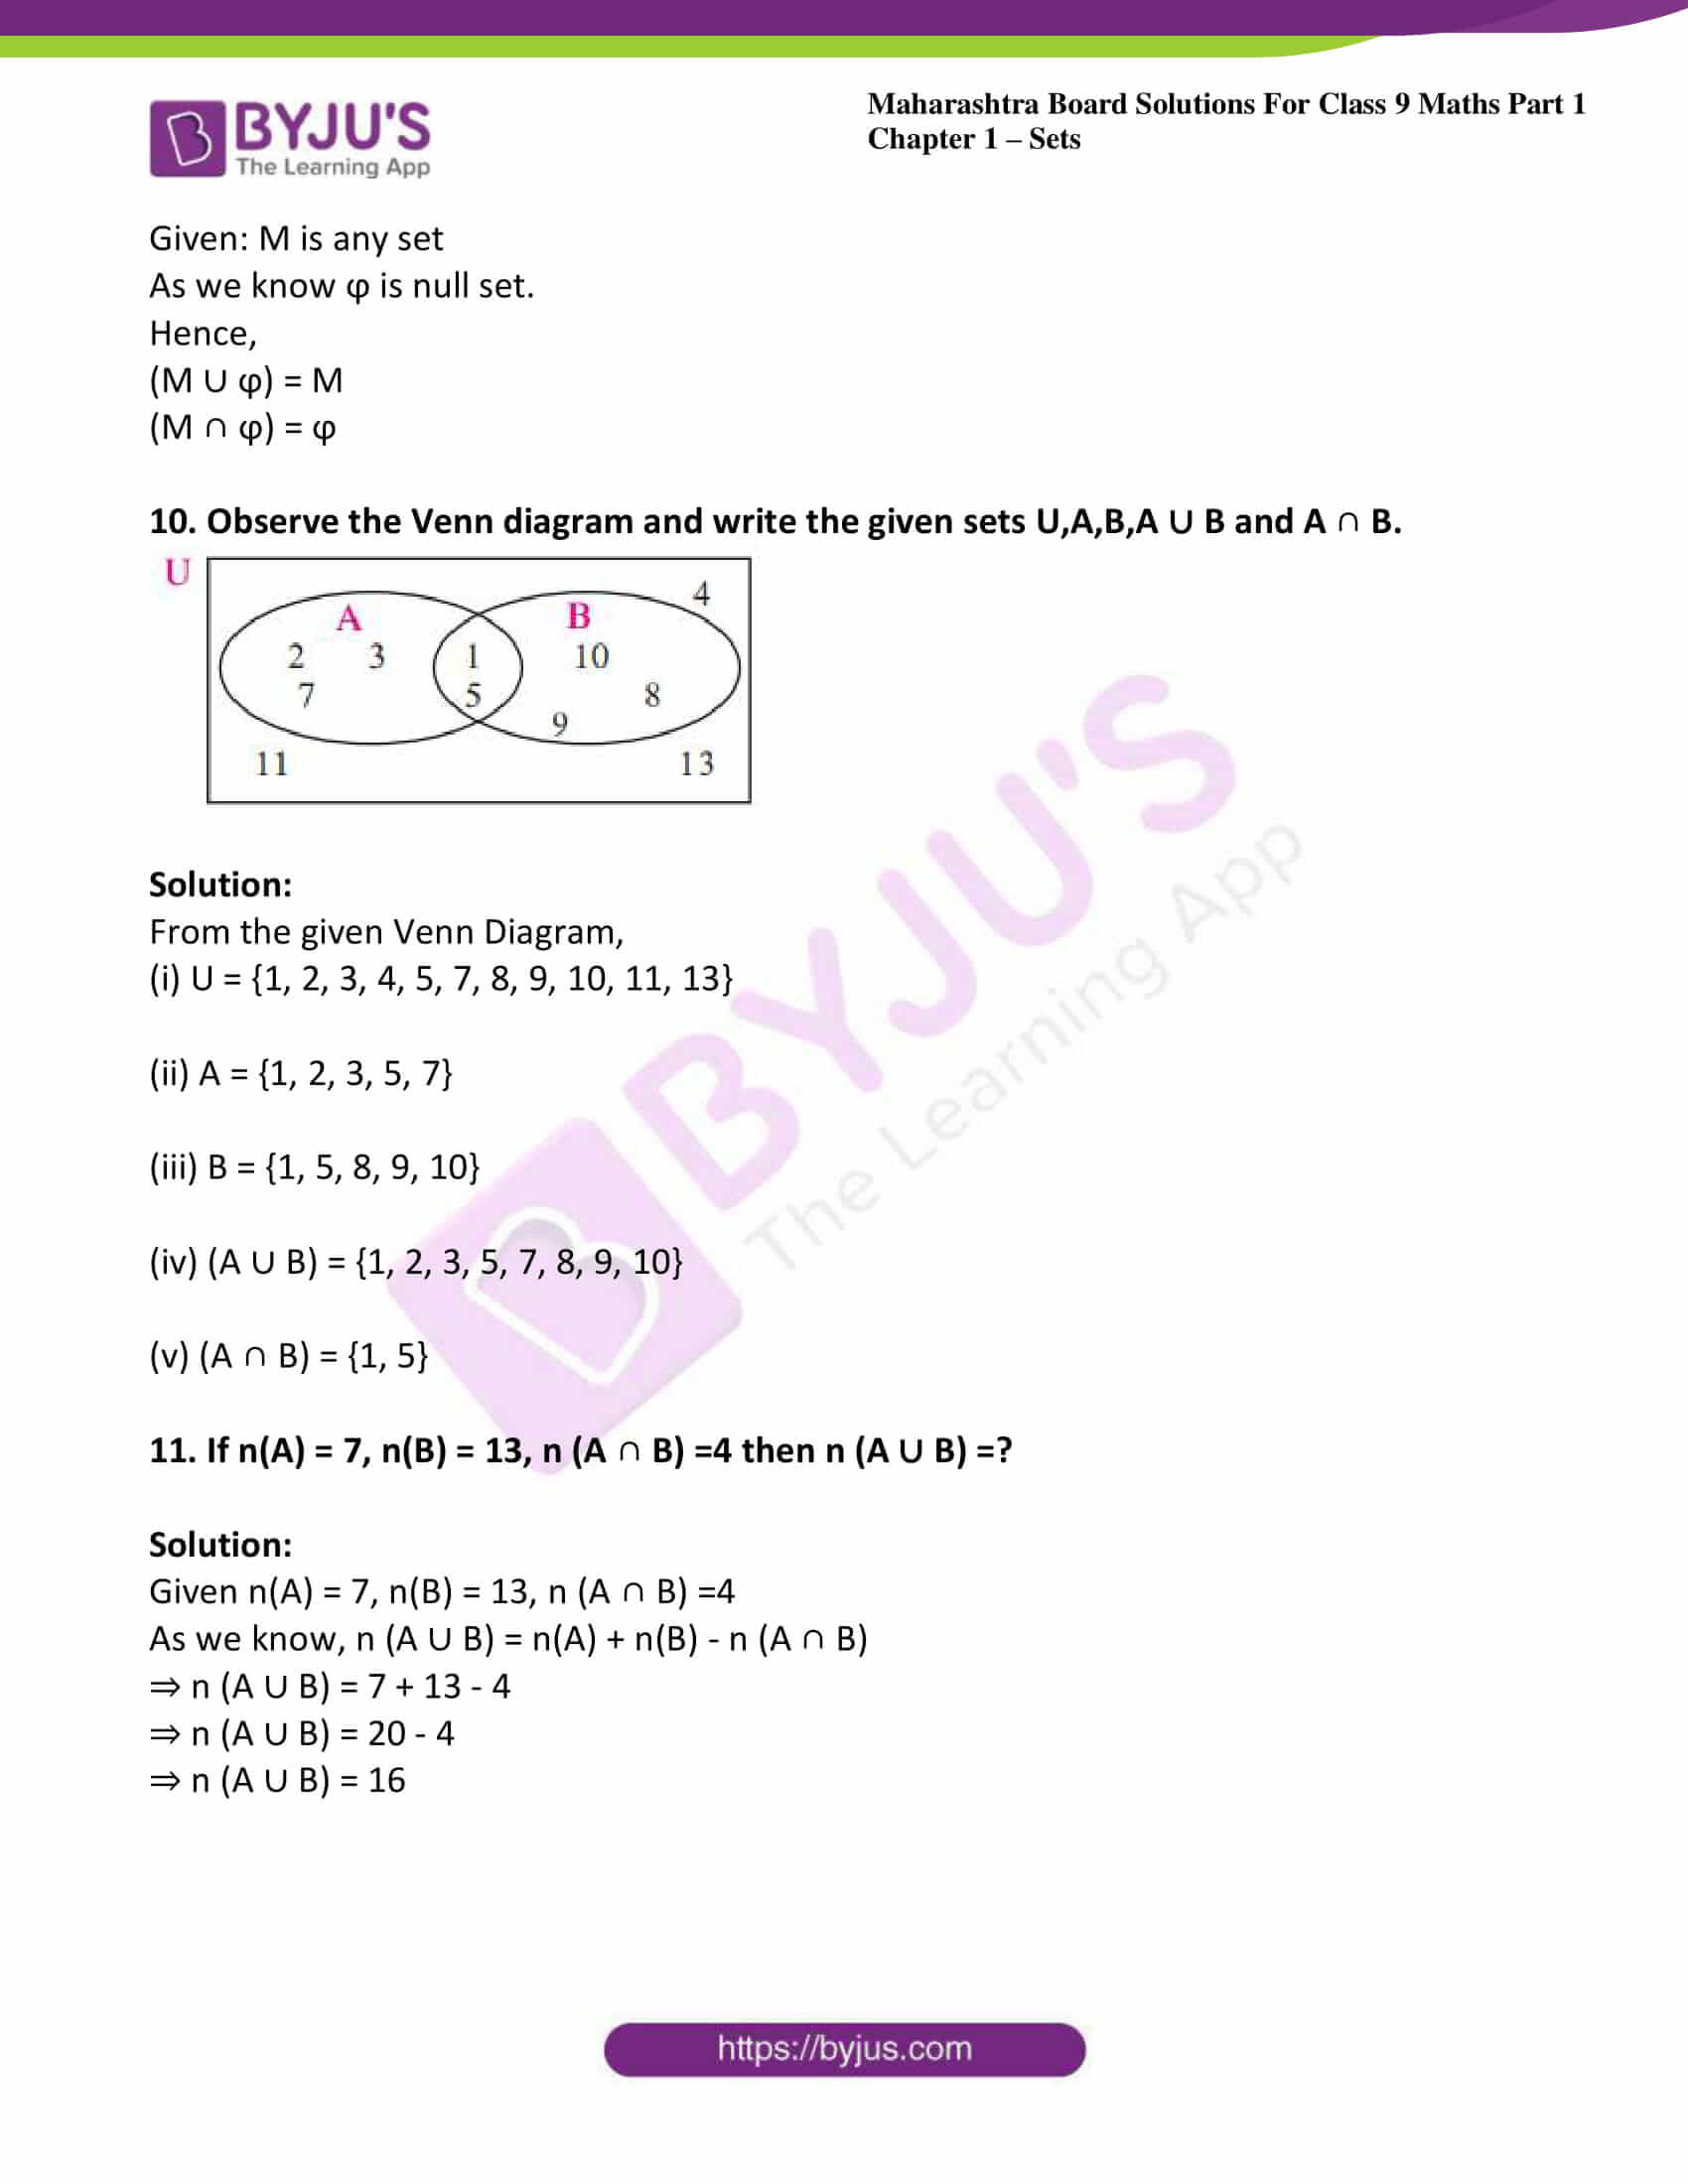 msbshse sol class 9 maths part 1 chapter 1 sets 25